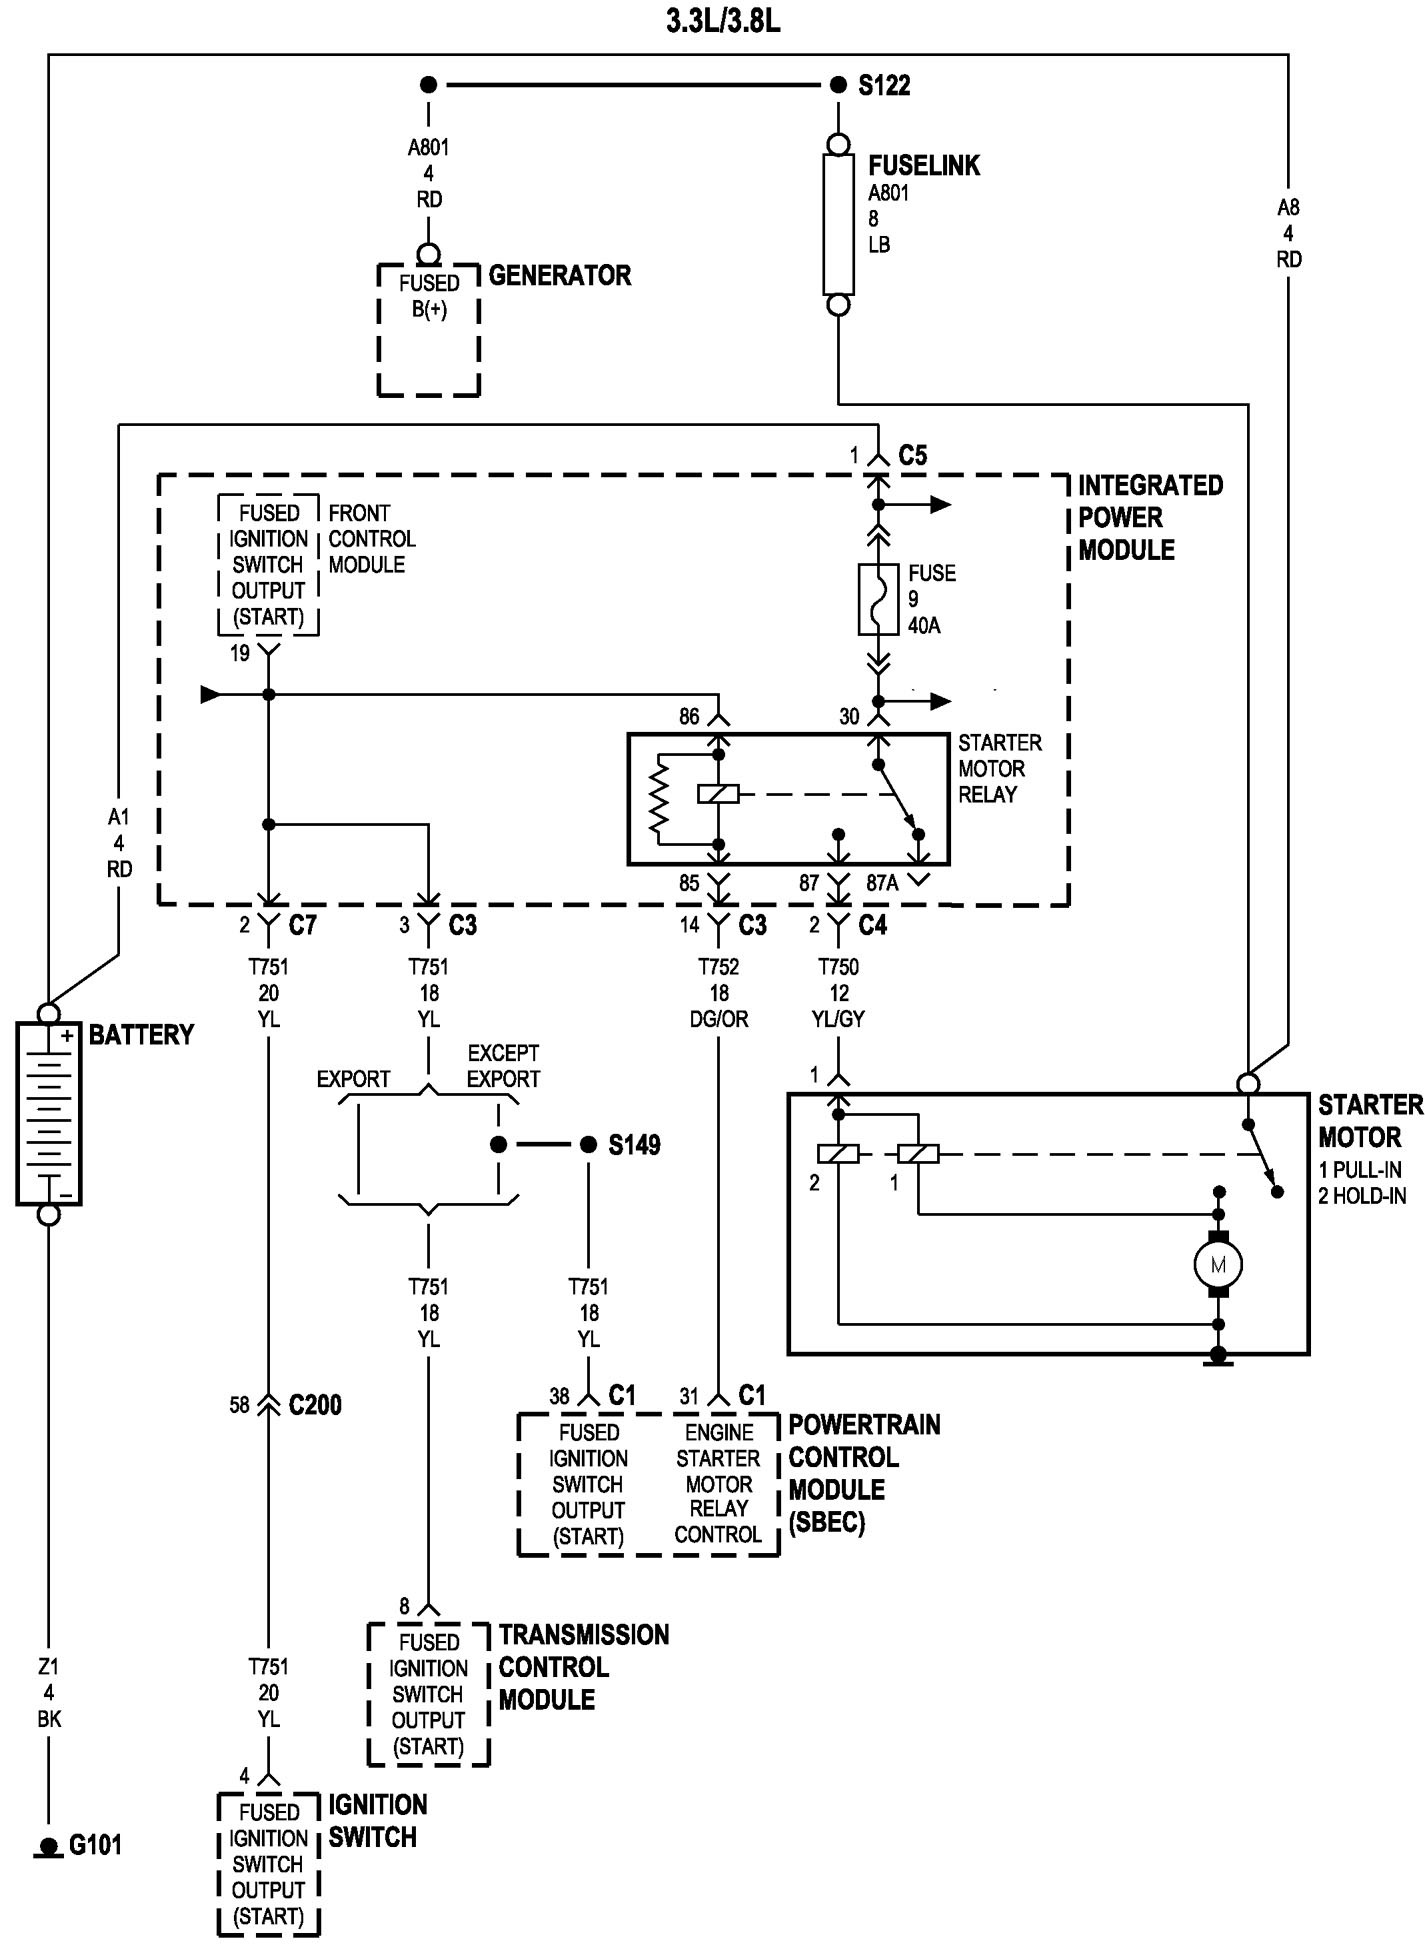 02 dodge caravan ac wiring diagram - wiring diagram instruct -  instruct.cfcarsnoleggio.it  cfcarsnoleggio.it